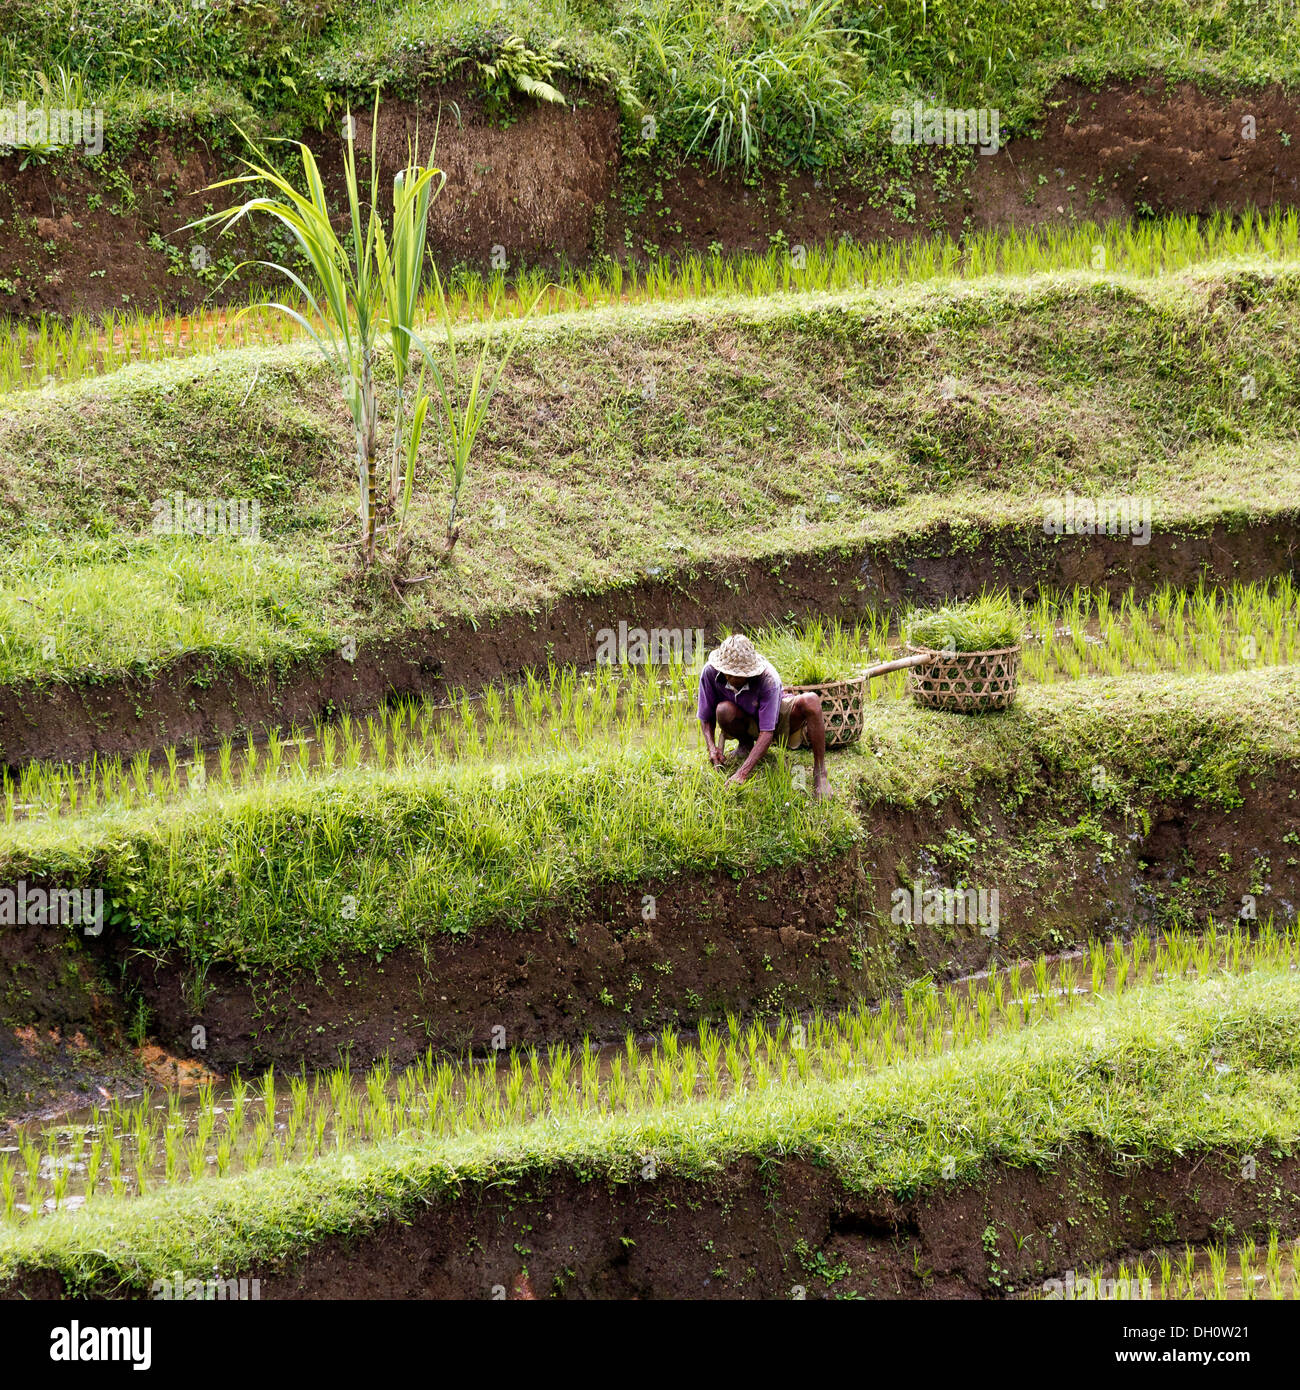 Rice terraces near Ubud, central Bali, Bali, Indonesia, Southeast Asia Stock Photo